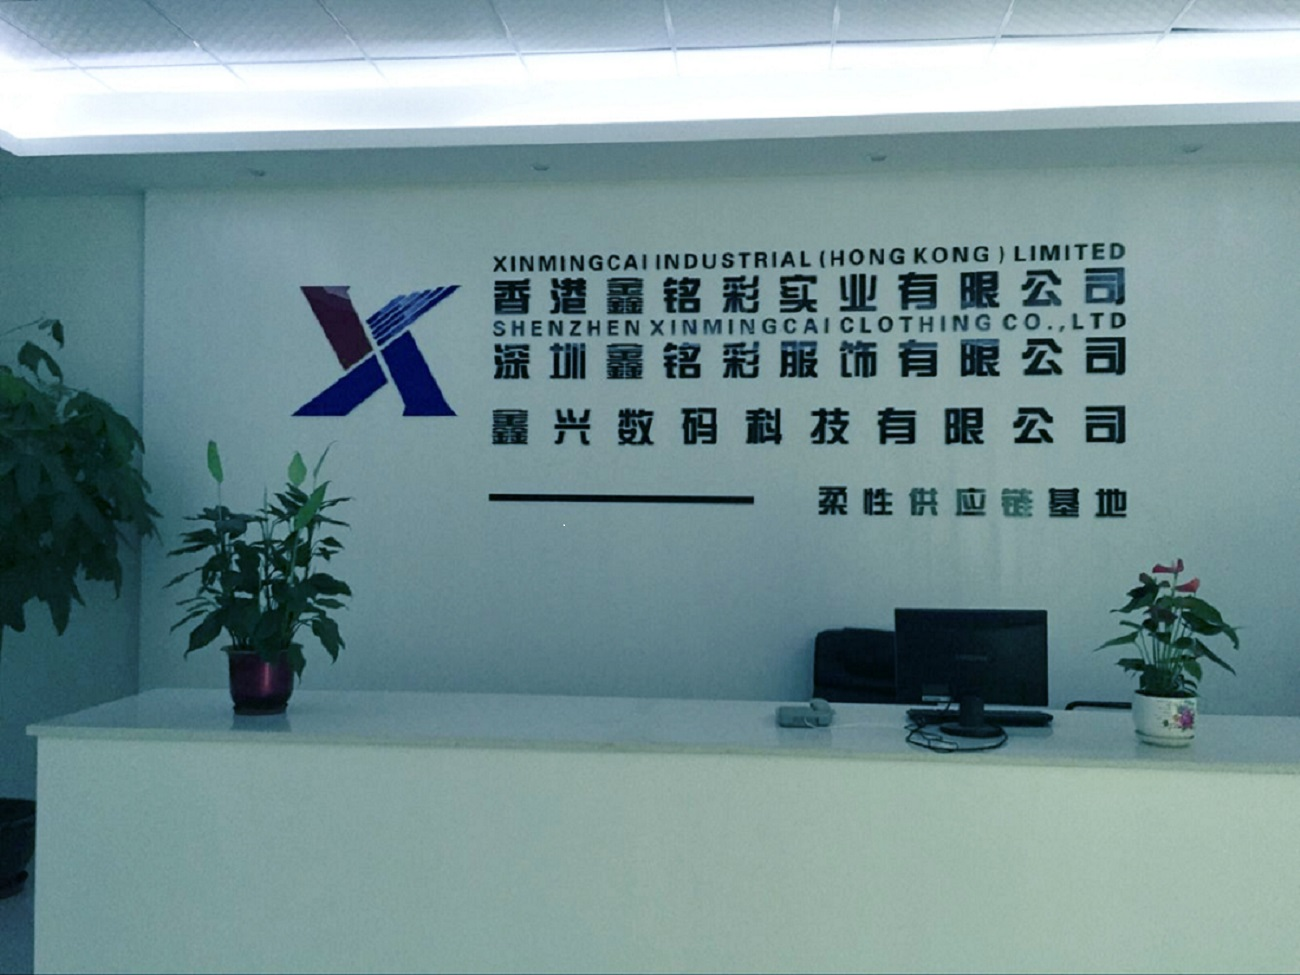 Shenzhen Xinmingcai Clothing Co,.Ltd